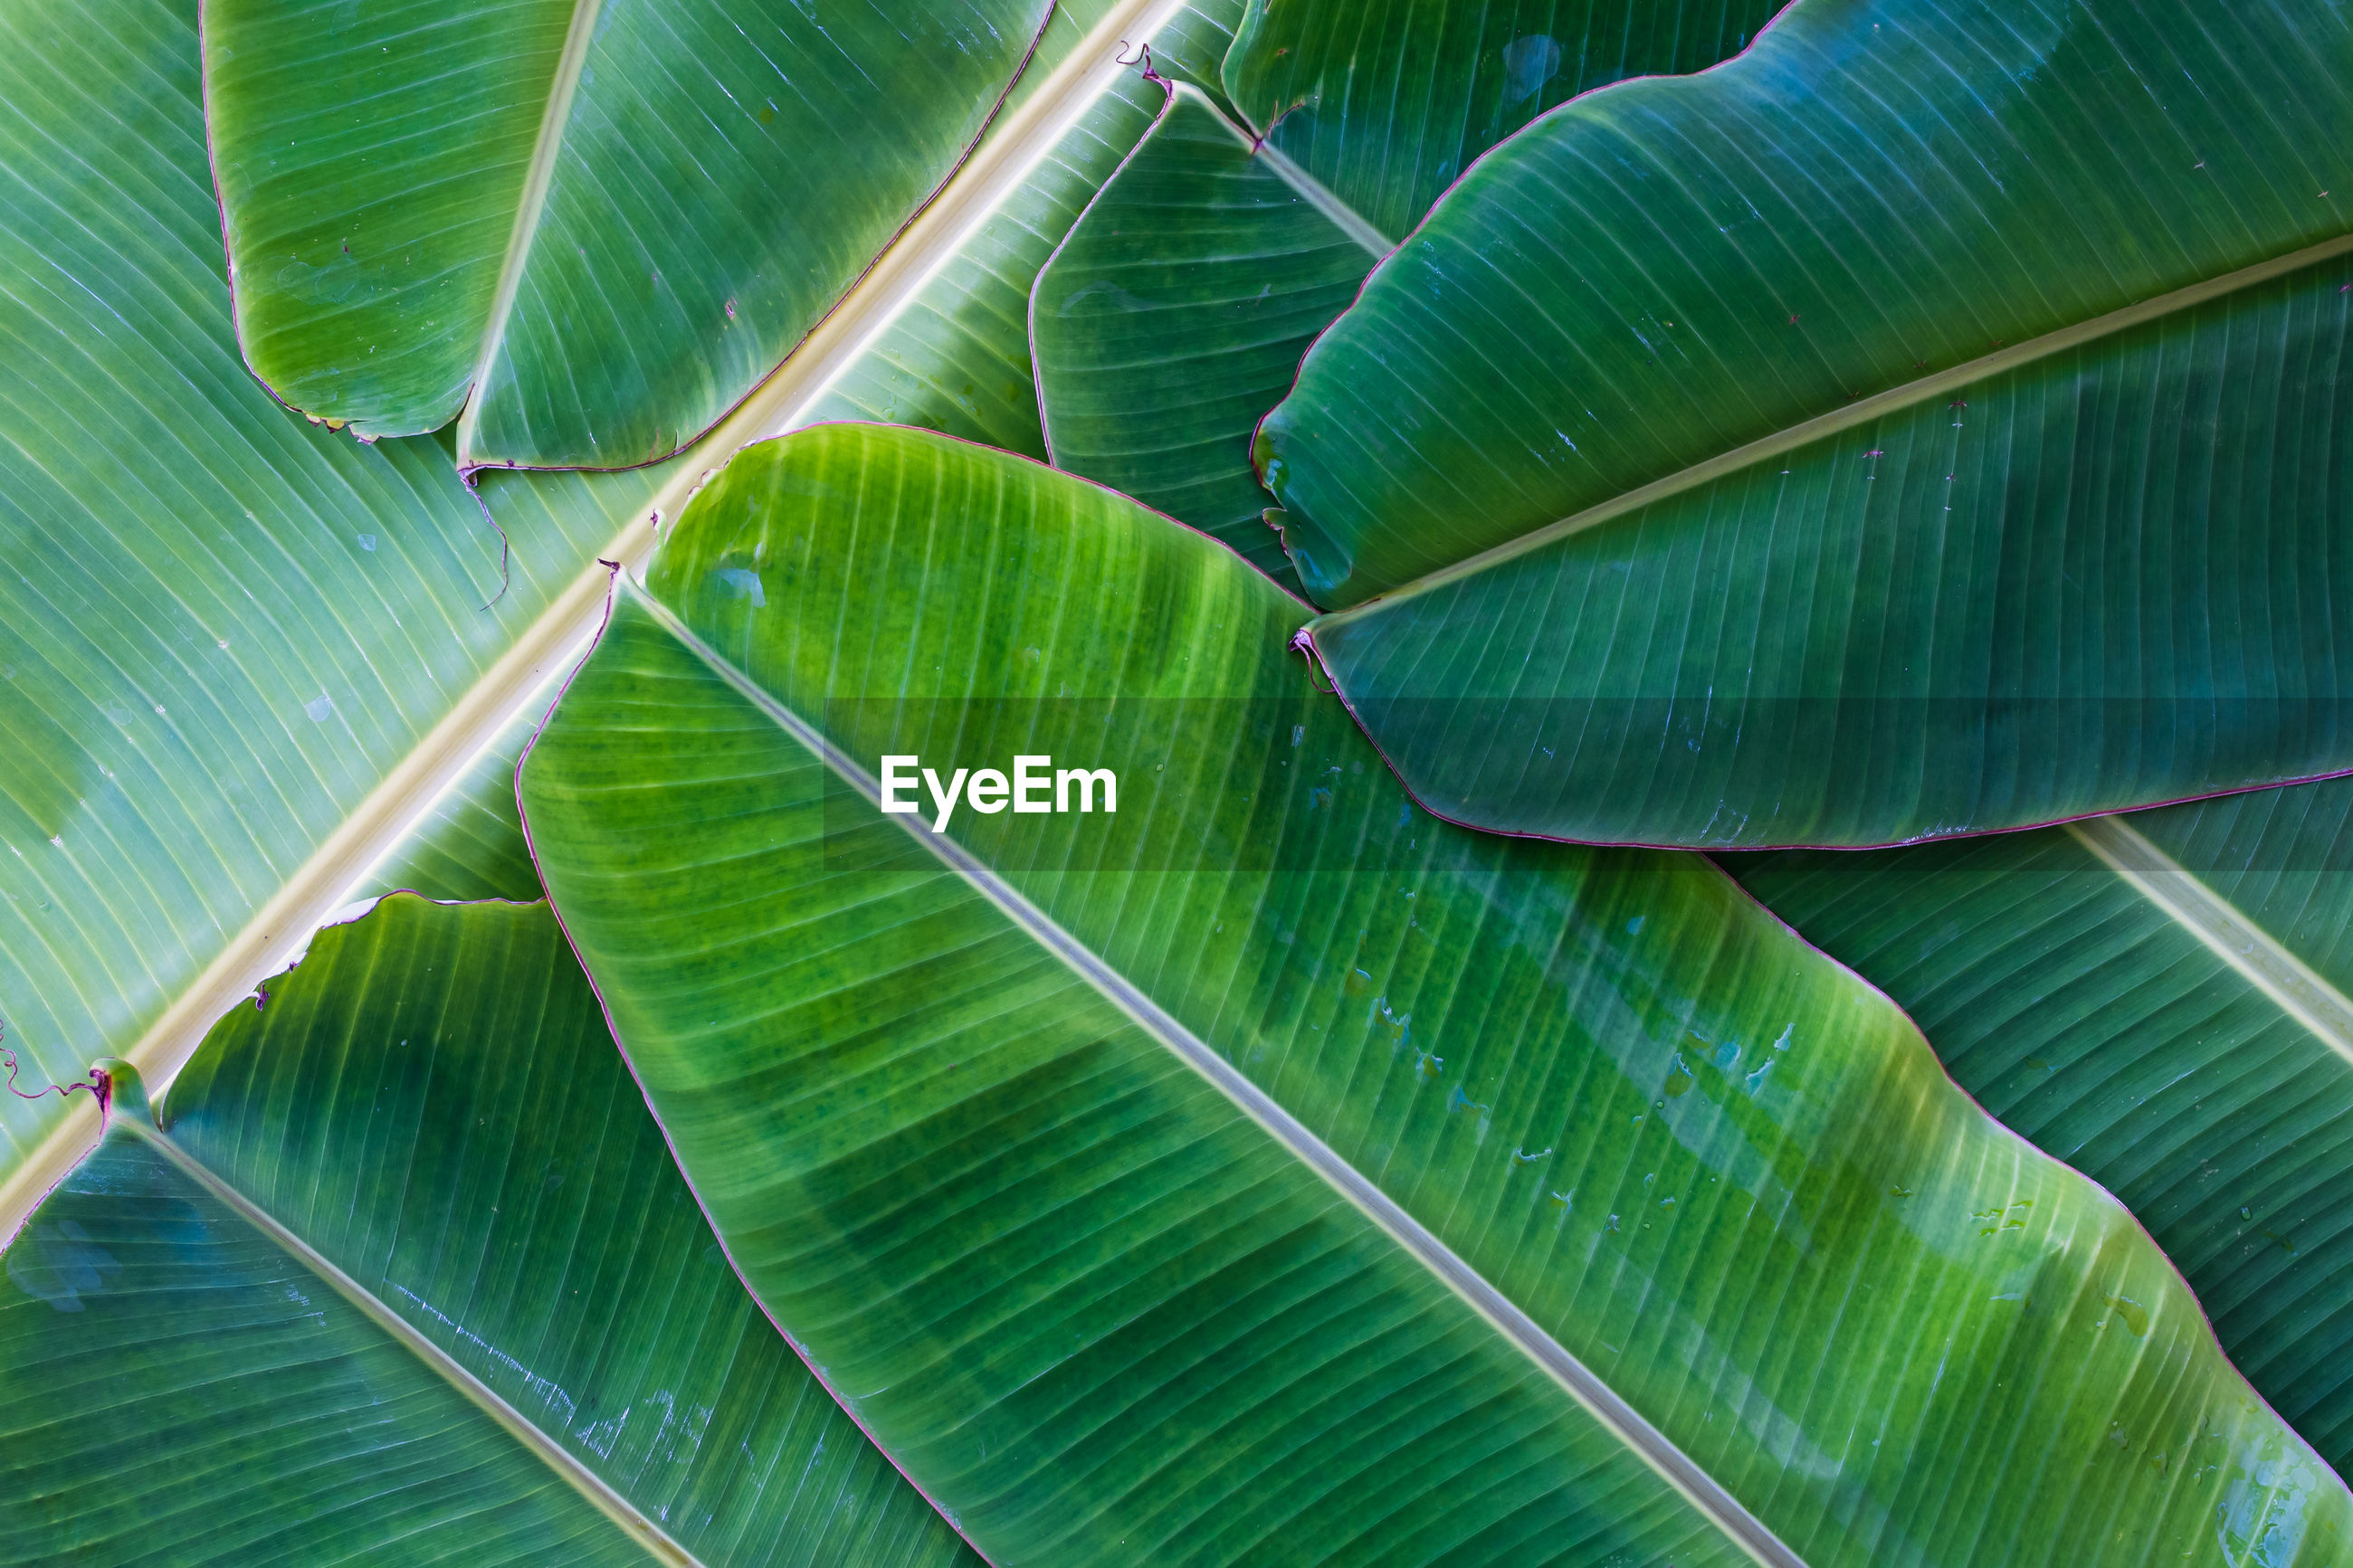 FULL FRAME SHOT OF LEAF WITH PALM LEAVES